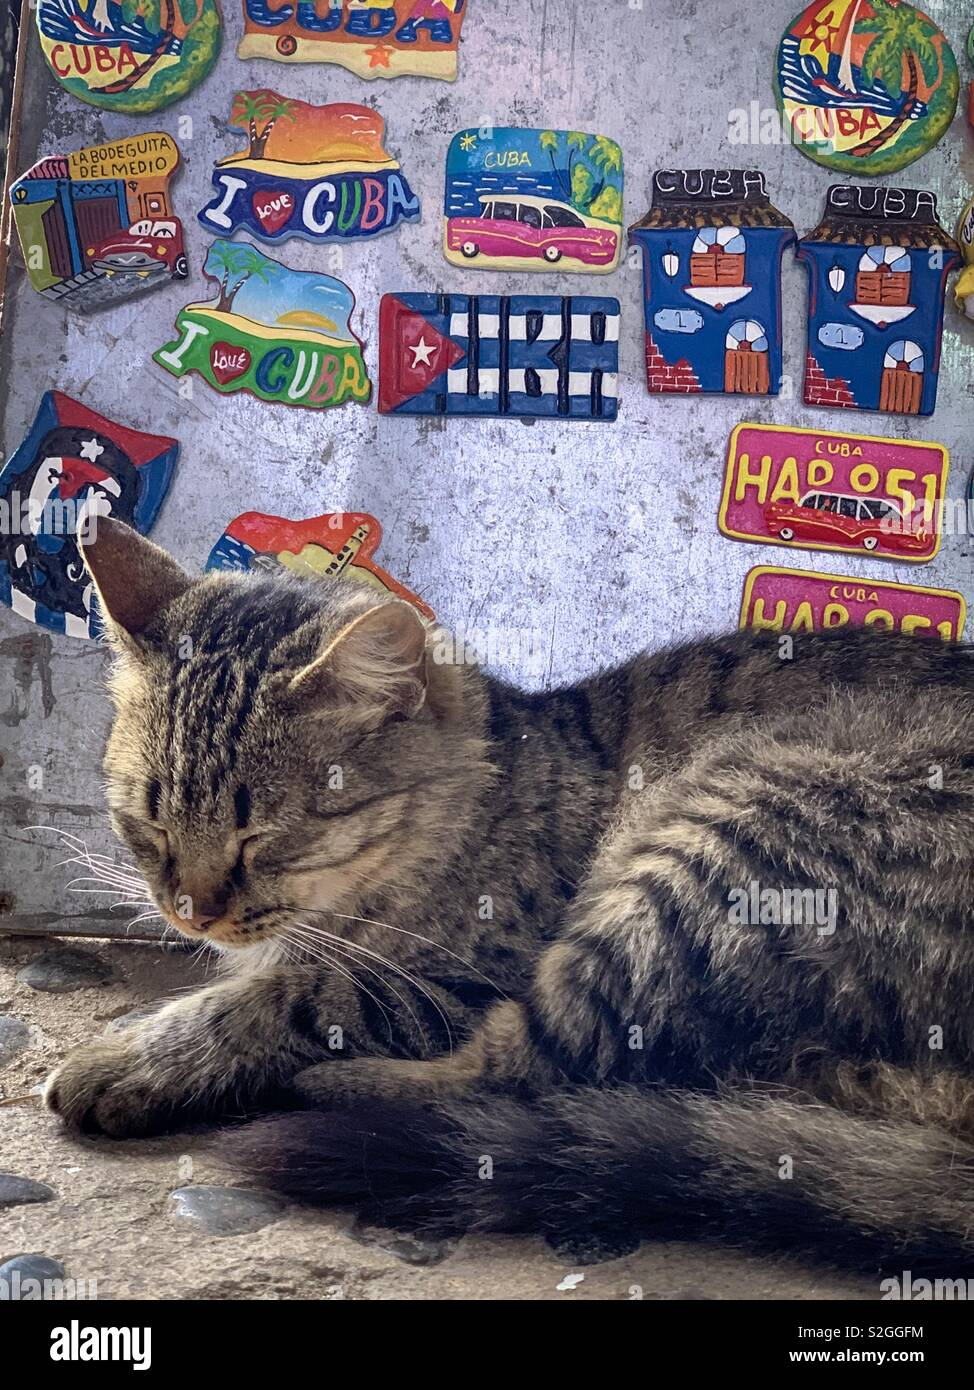 Snoozing tabby cat closeup in front of Cuba souvenir magnets - Stock Image